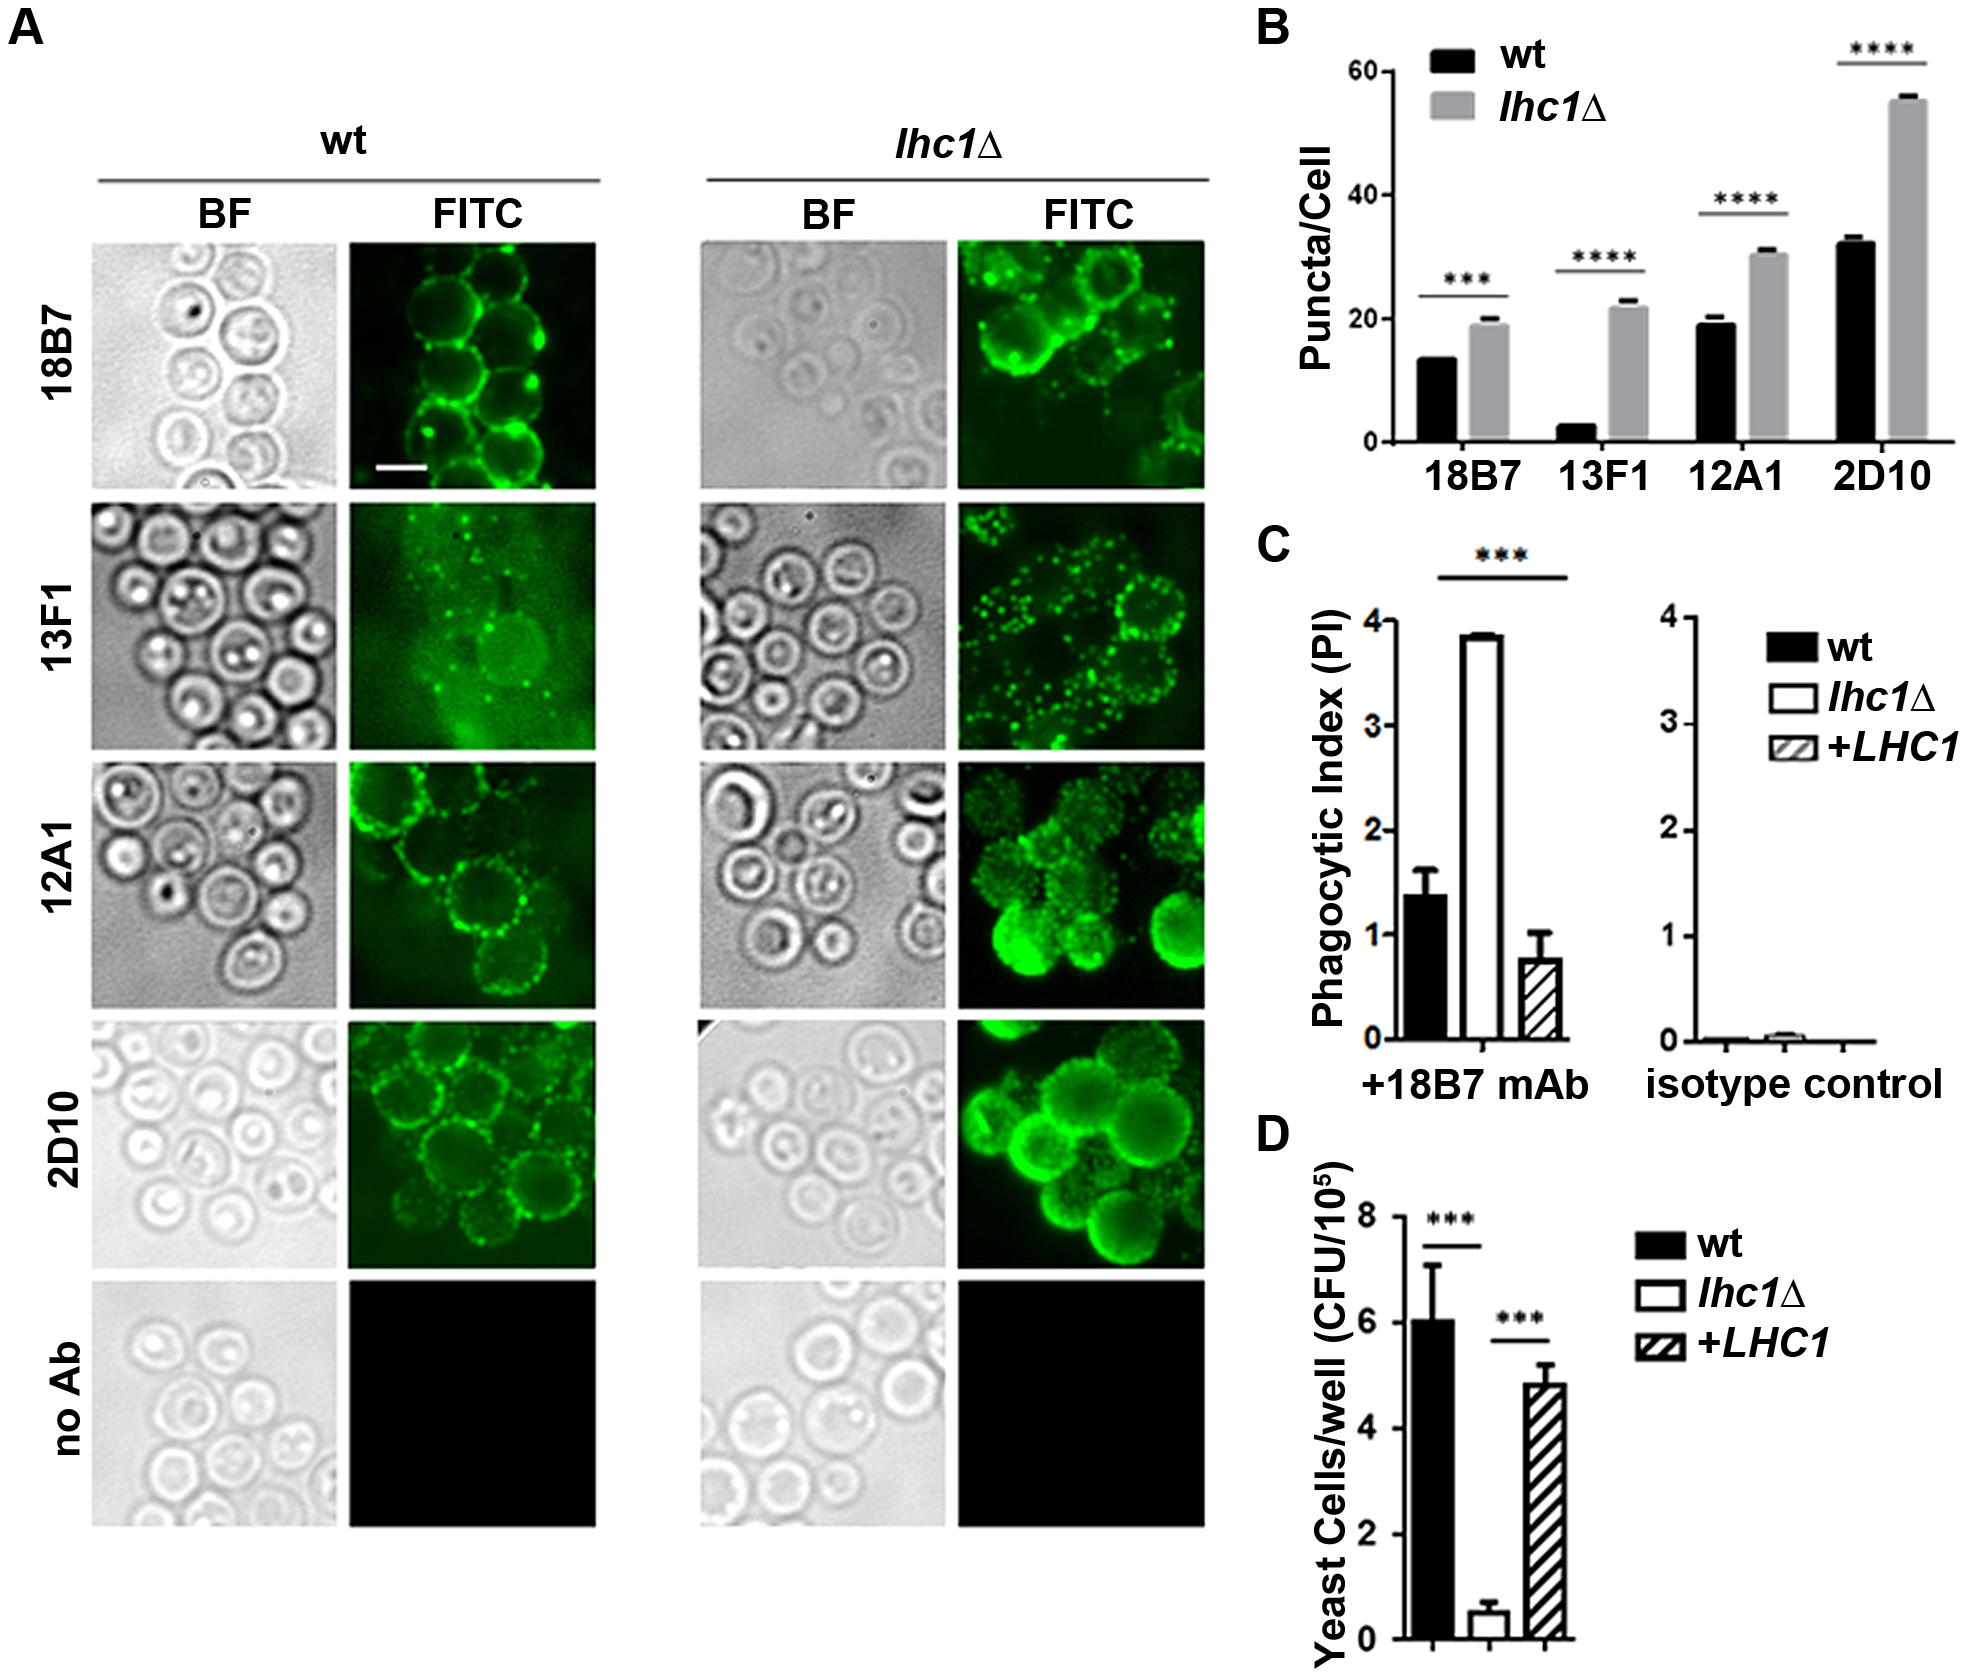 wt and <i>lhc1</i>Δ mutant strains of <i>C. neoformans</i> differ in antibody binding and antibody mediated phagocytosis by a J774.16 macrophage-like cell line.